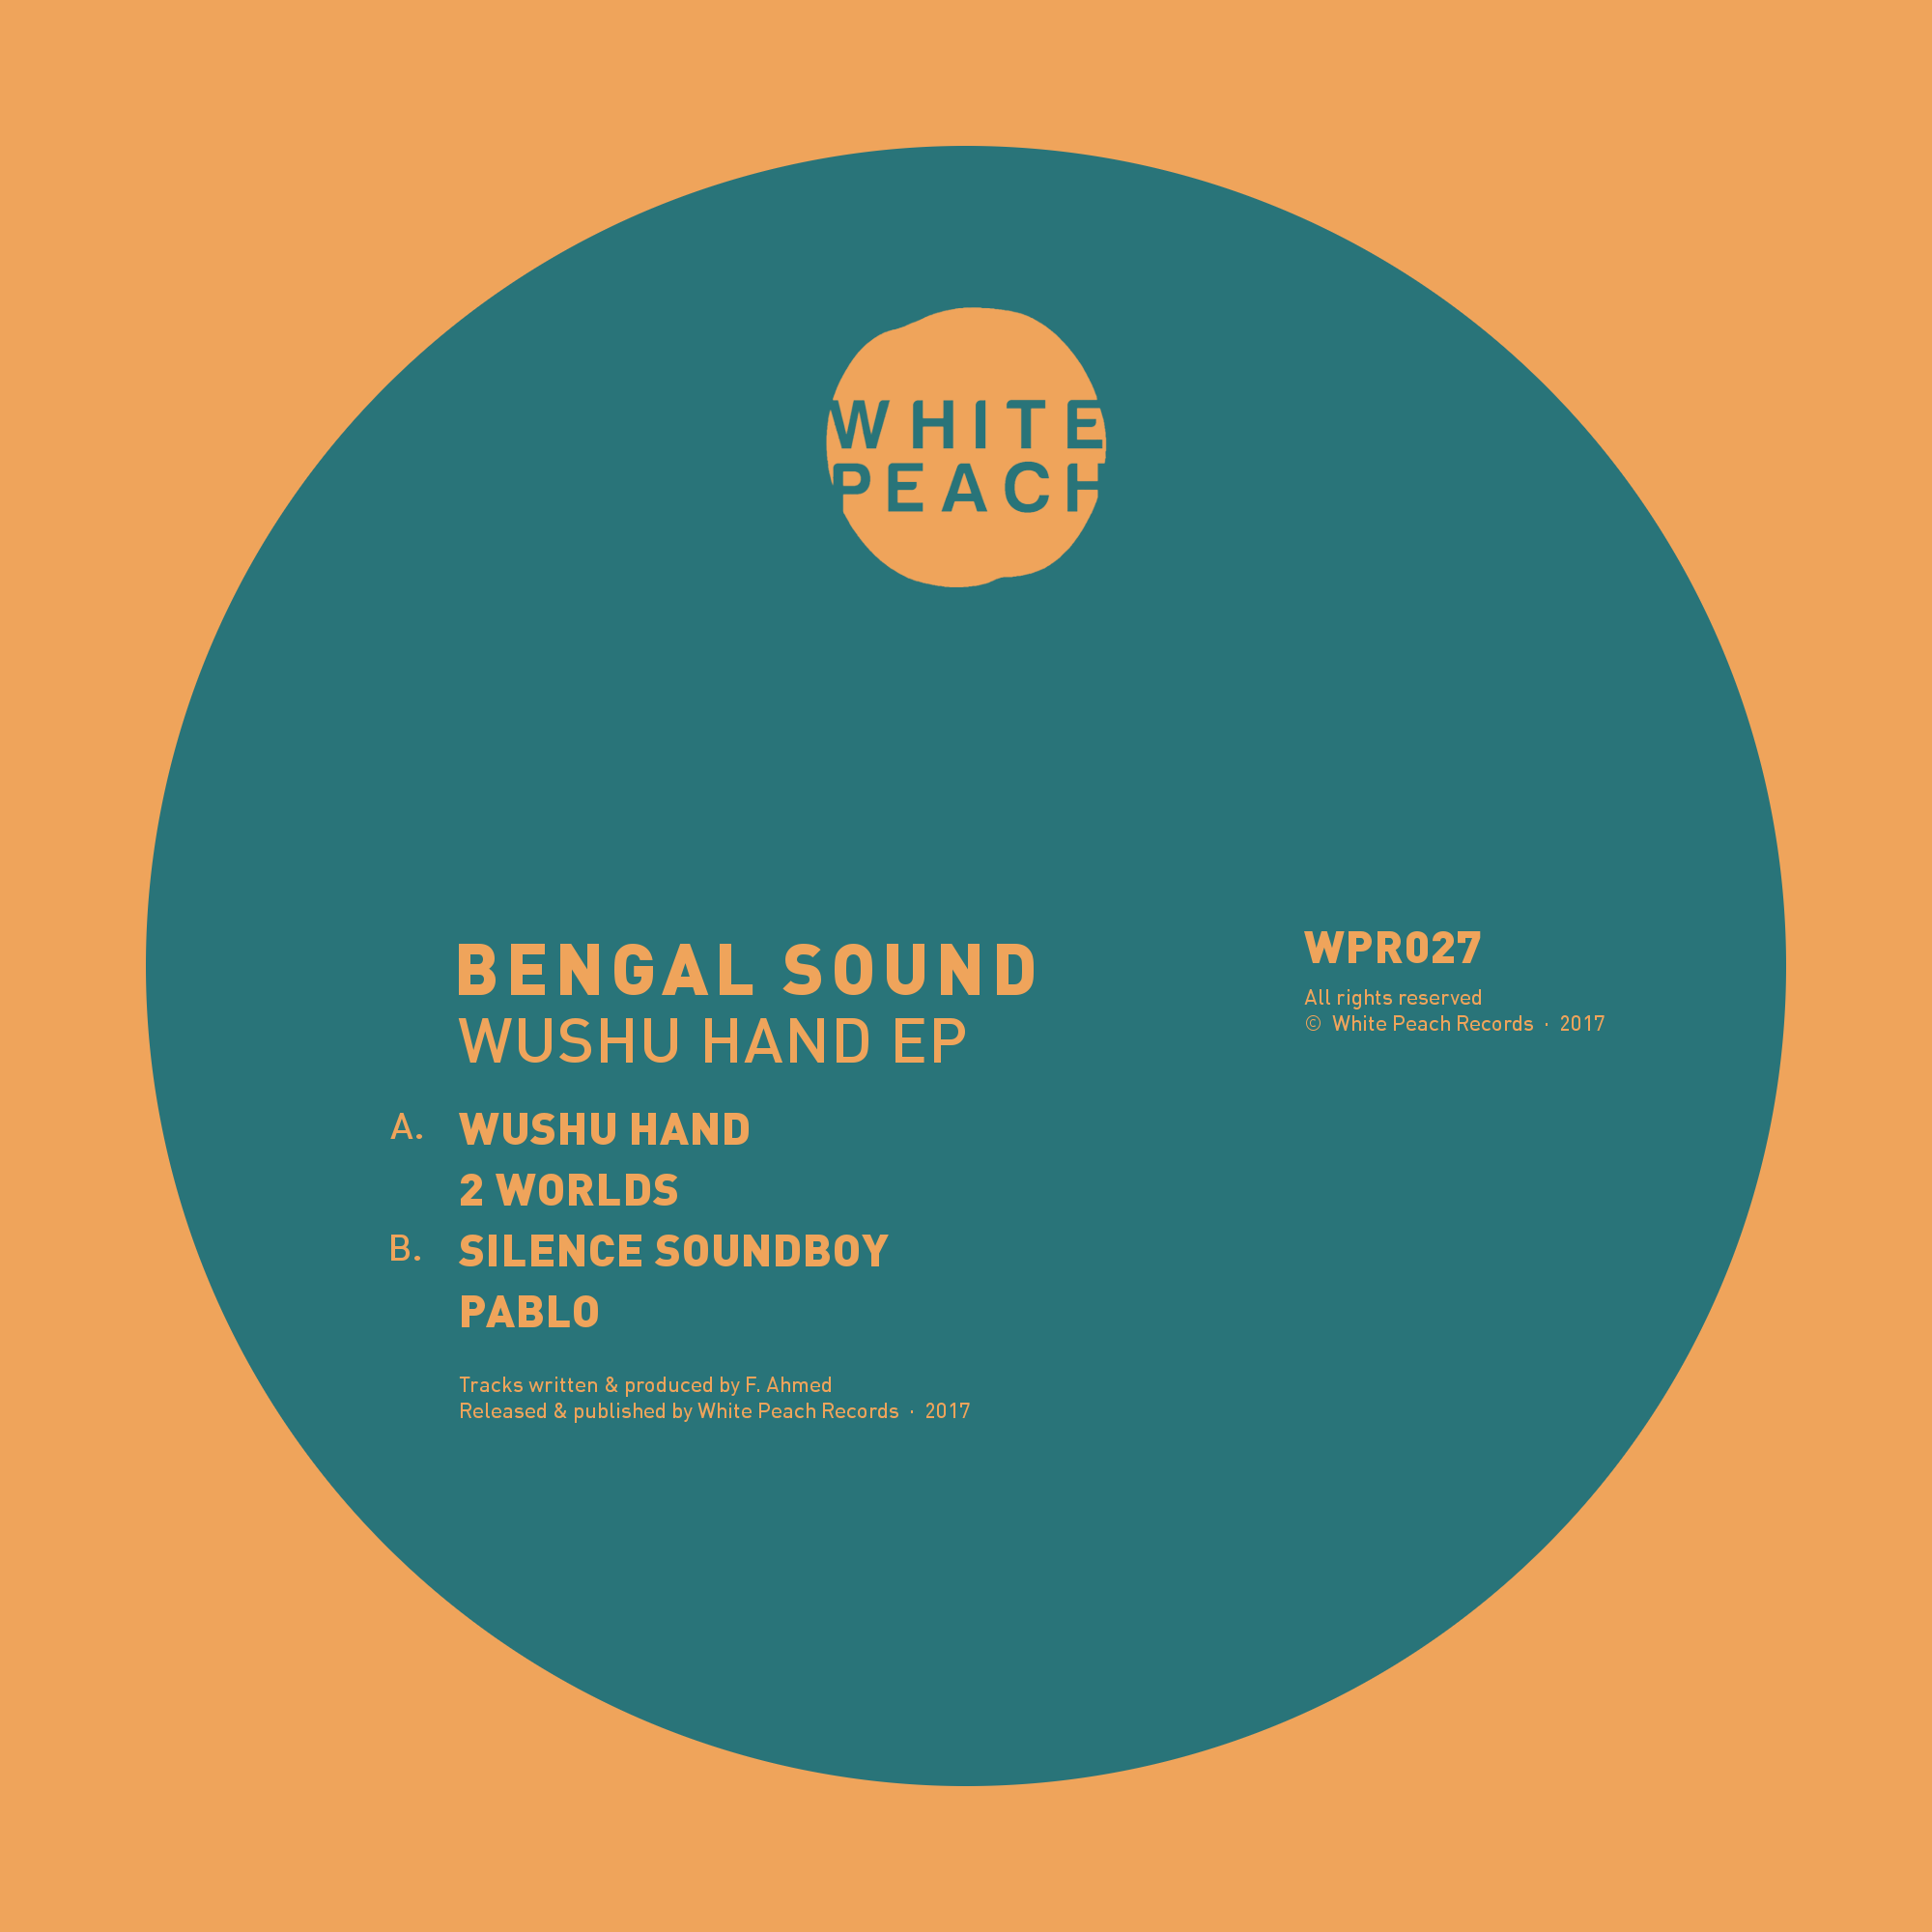 WPR027 (Bengal Sound - Wushu Hand EP, digital artwork).png